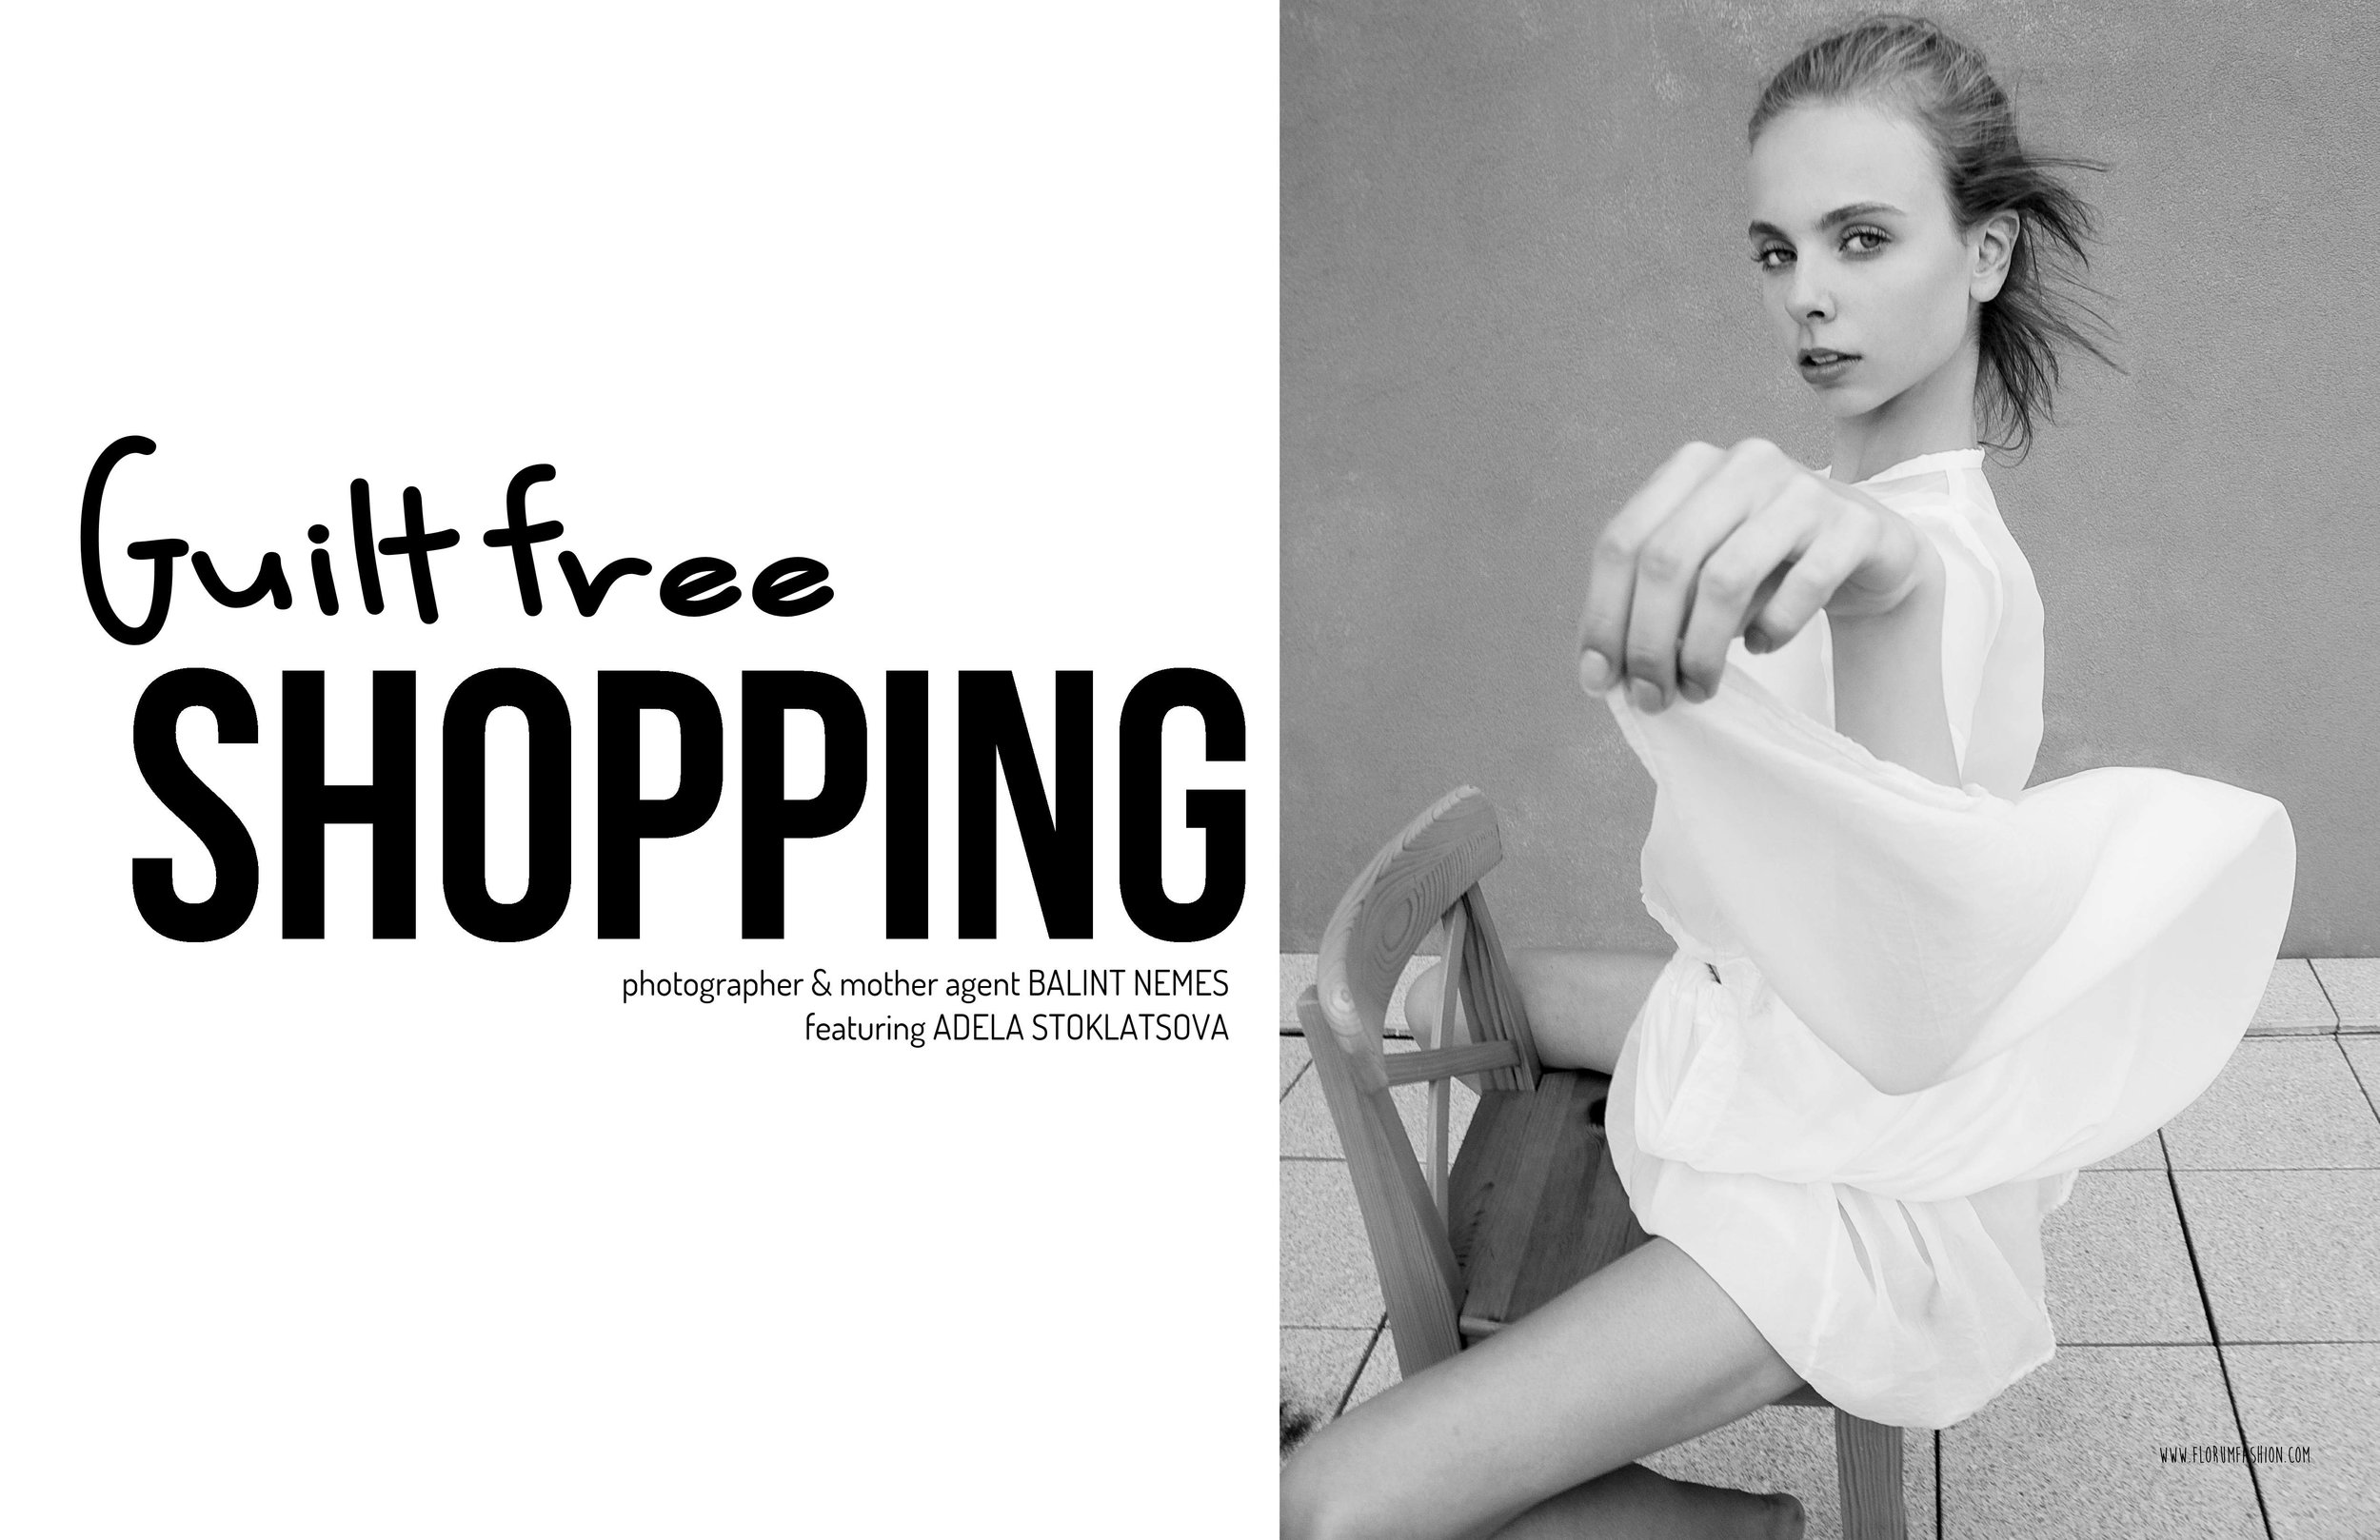 Shopping Guilt Free - Florum Fashion Magazine -The Real Real - Buy Second Hand Used Vintage - Balint Nemes personal model management - Adela stoklatsova Hungary Slovakia Czech Republic Poland - Egoist Fashion shop00.jpg